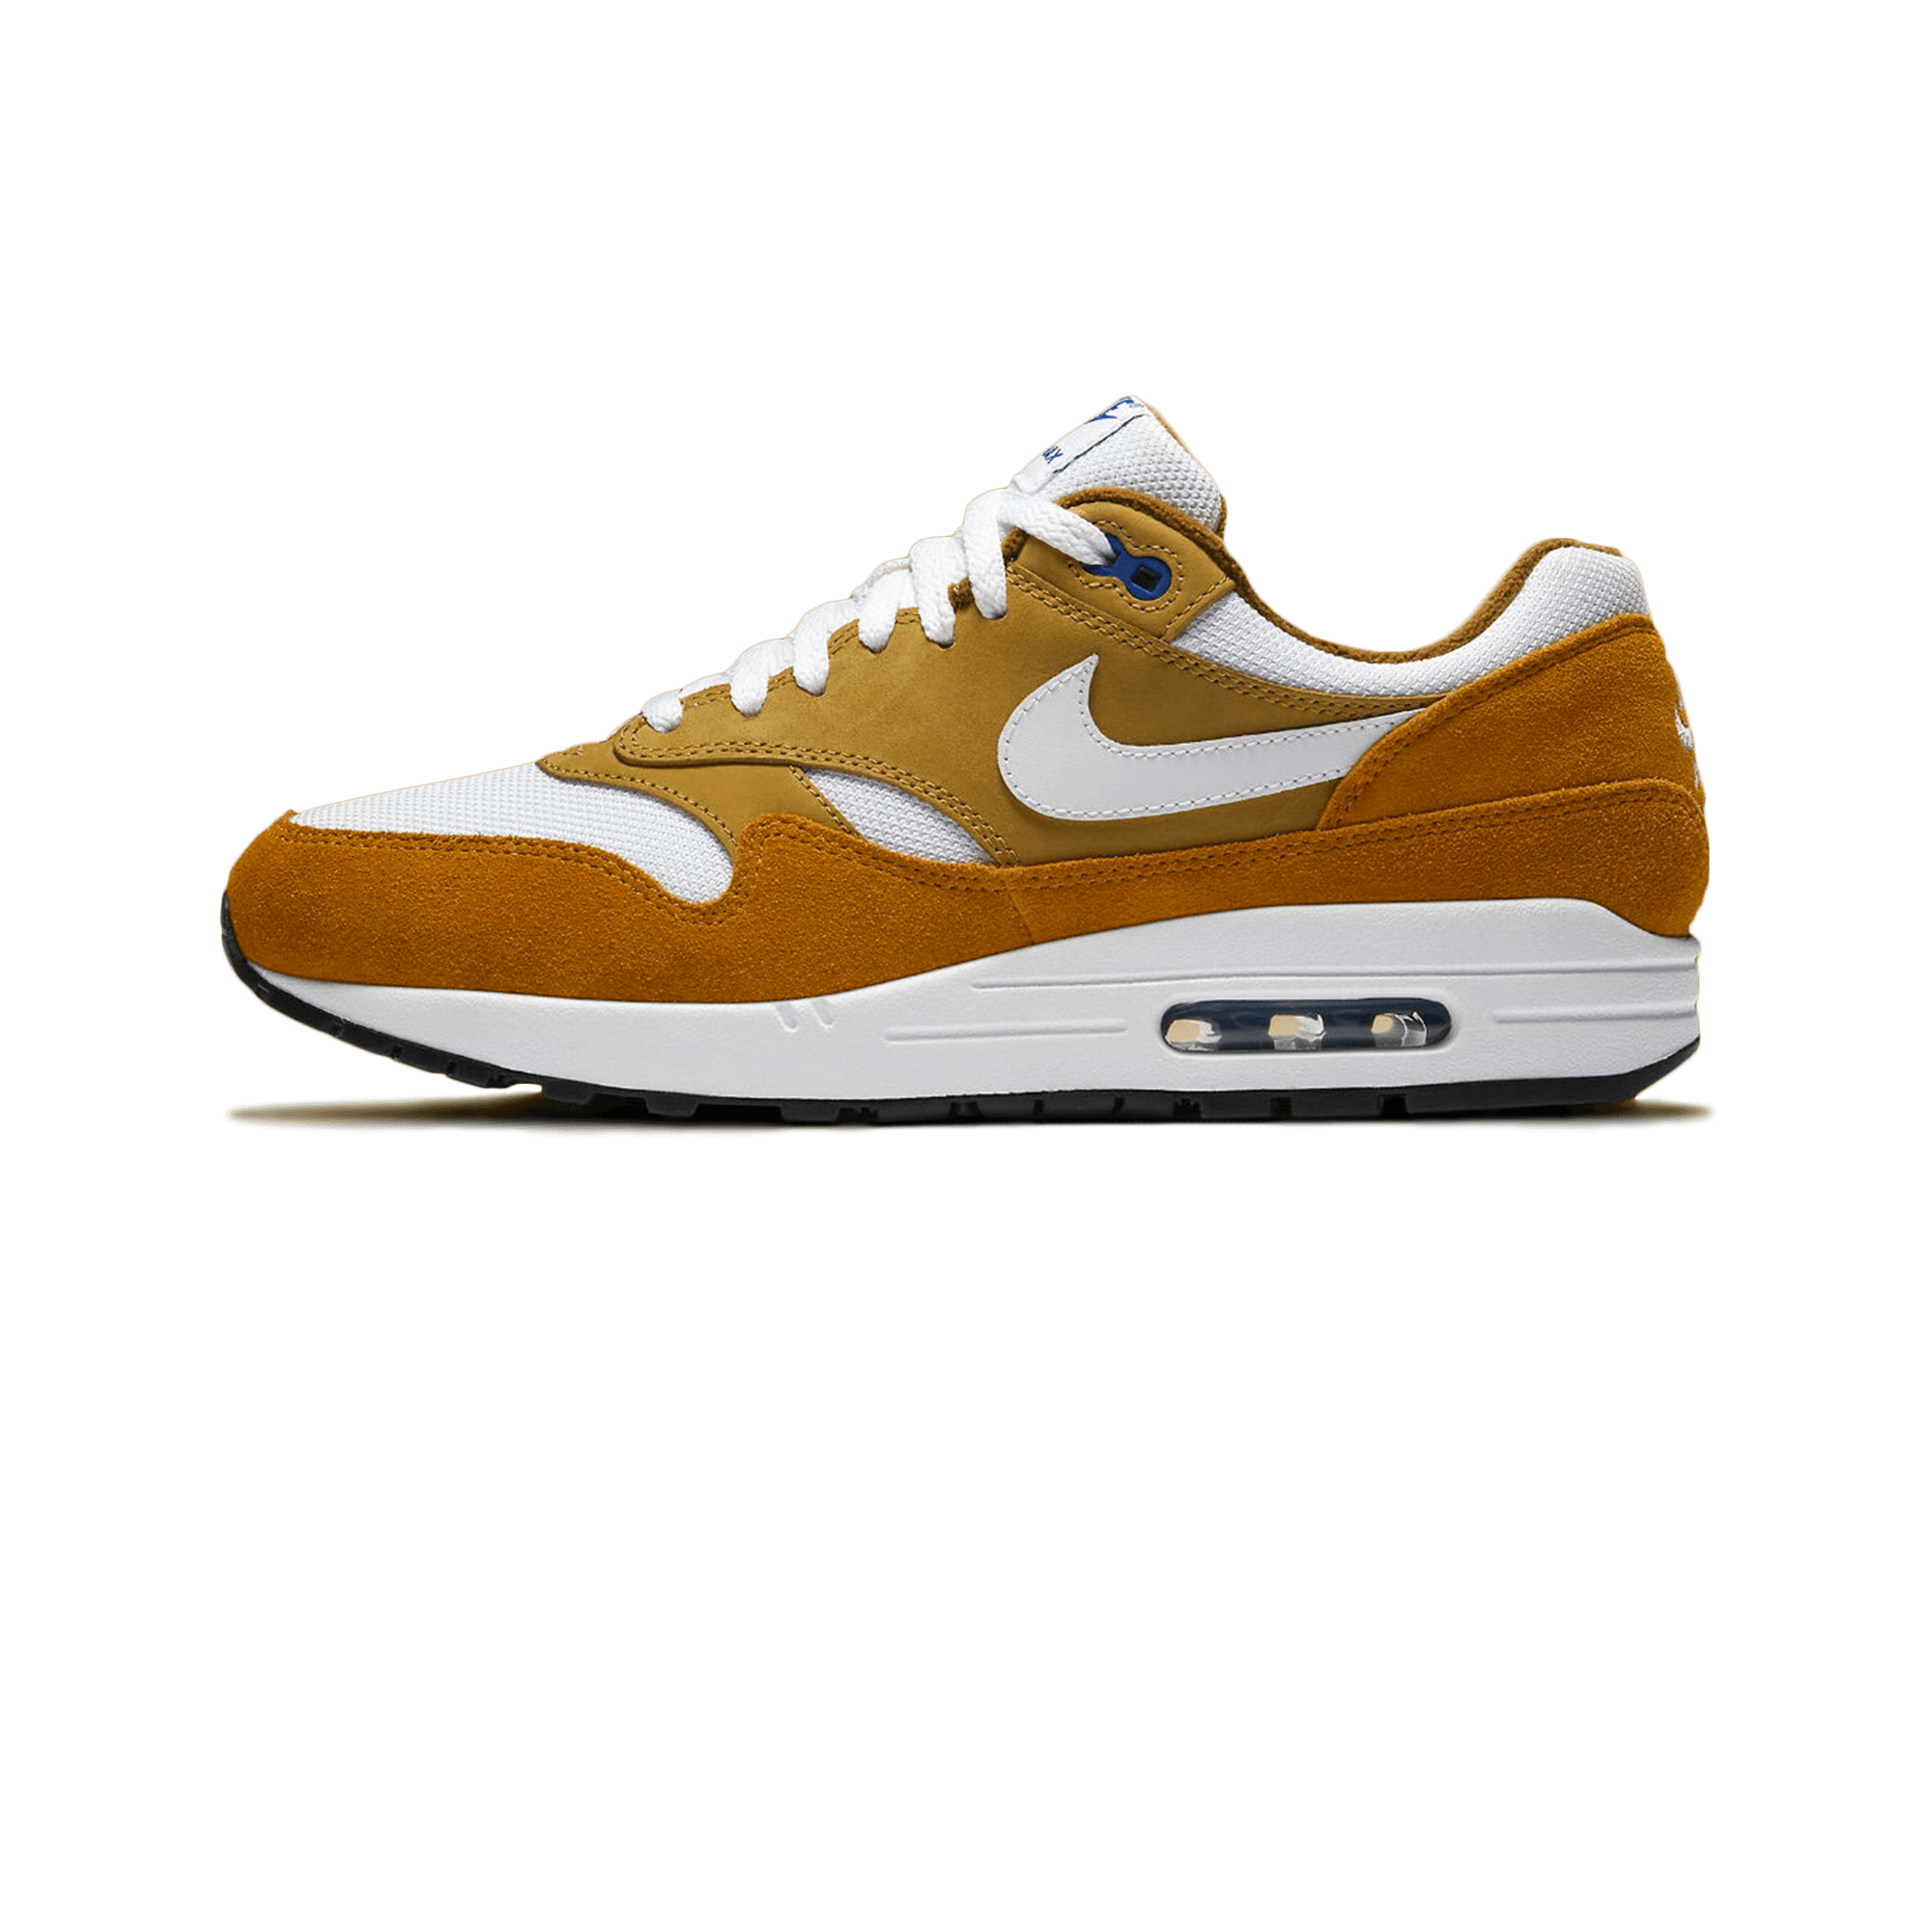 nike air max 1 prm retro curry nz